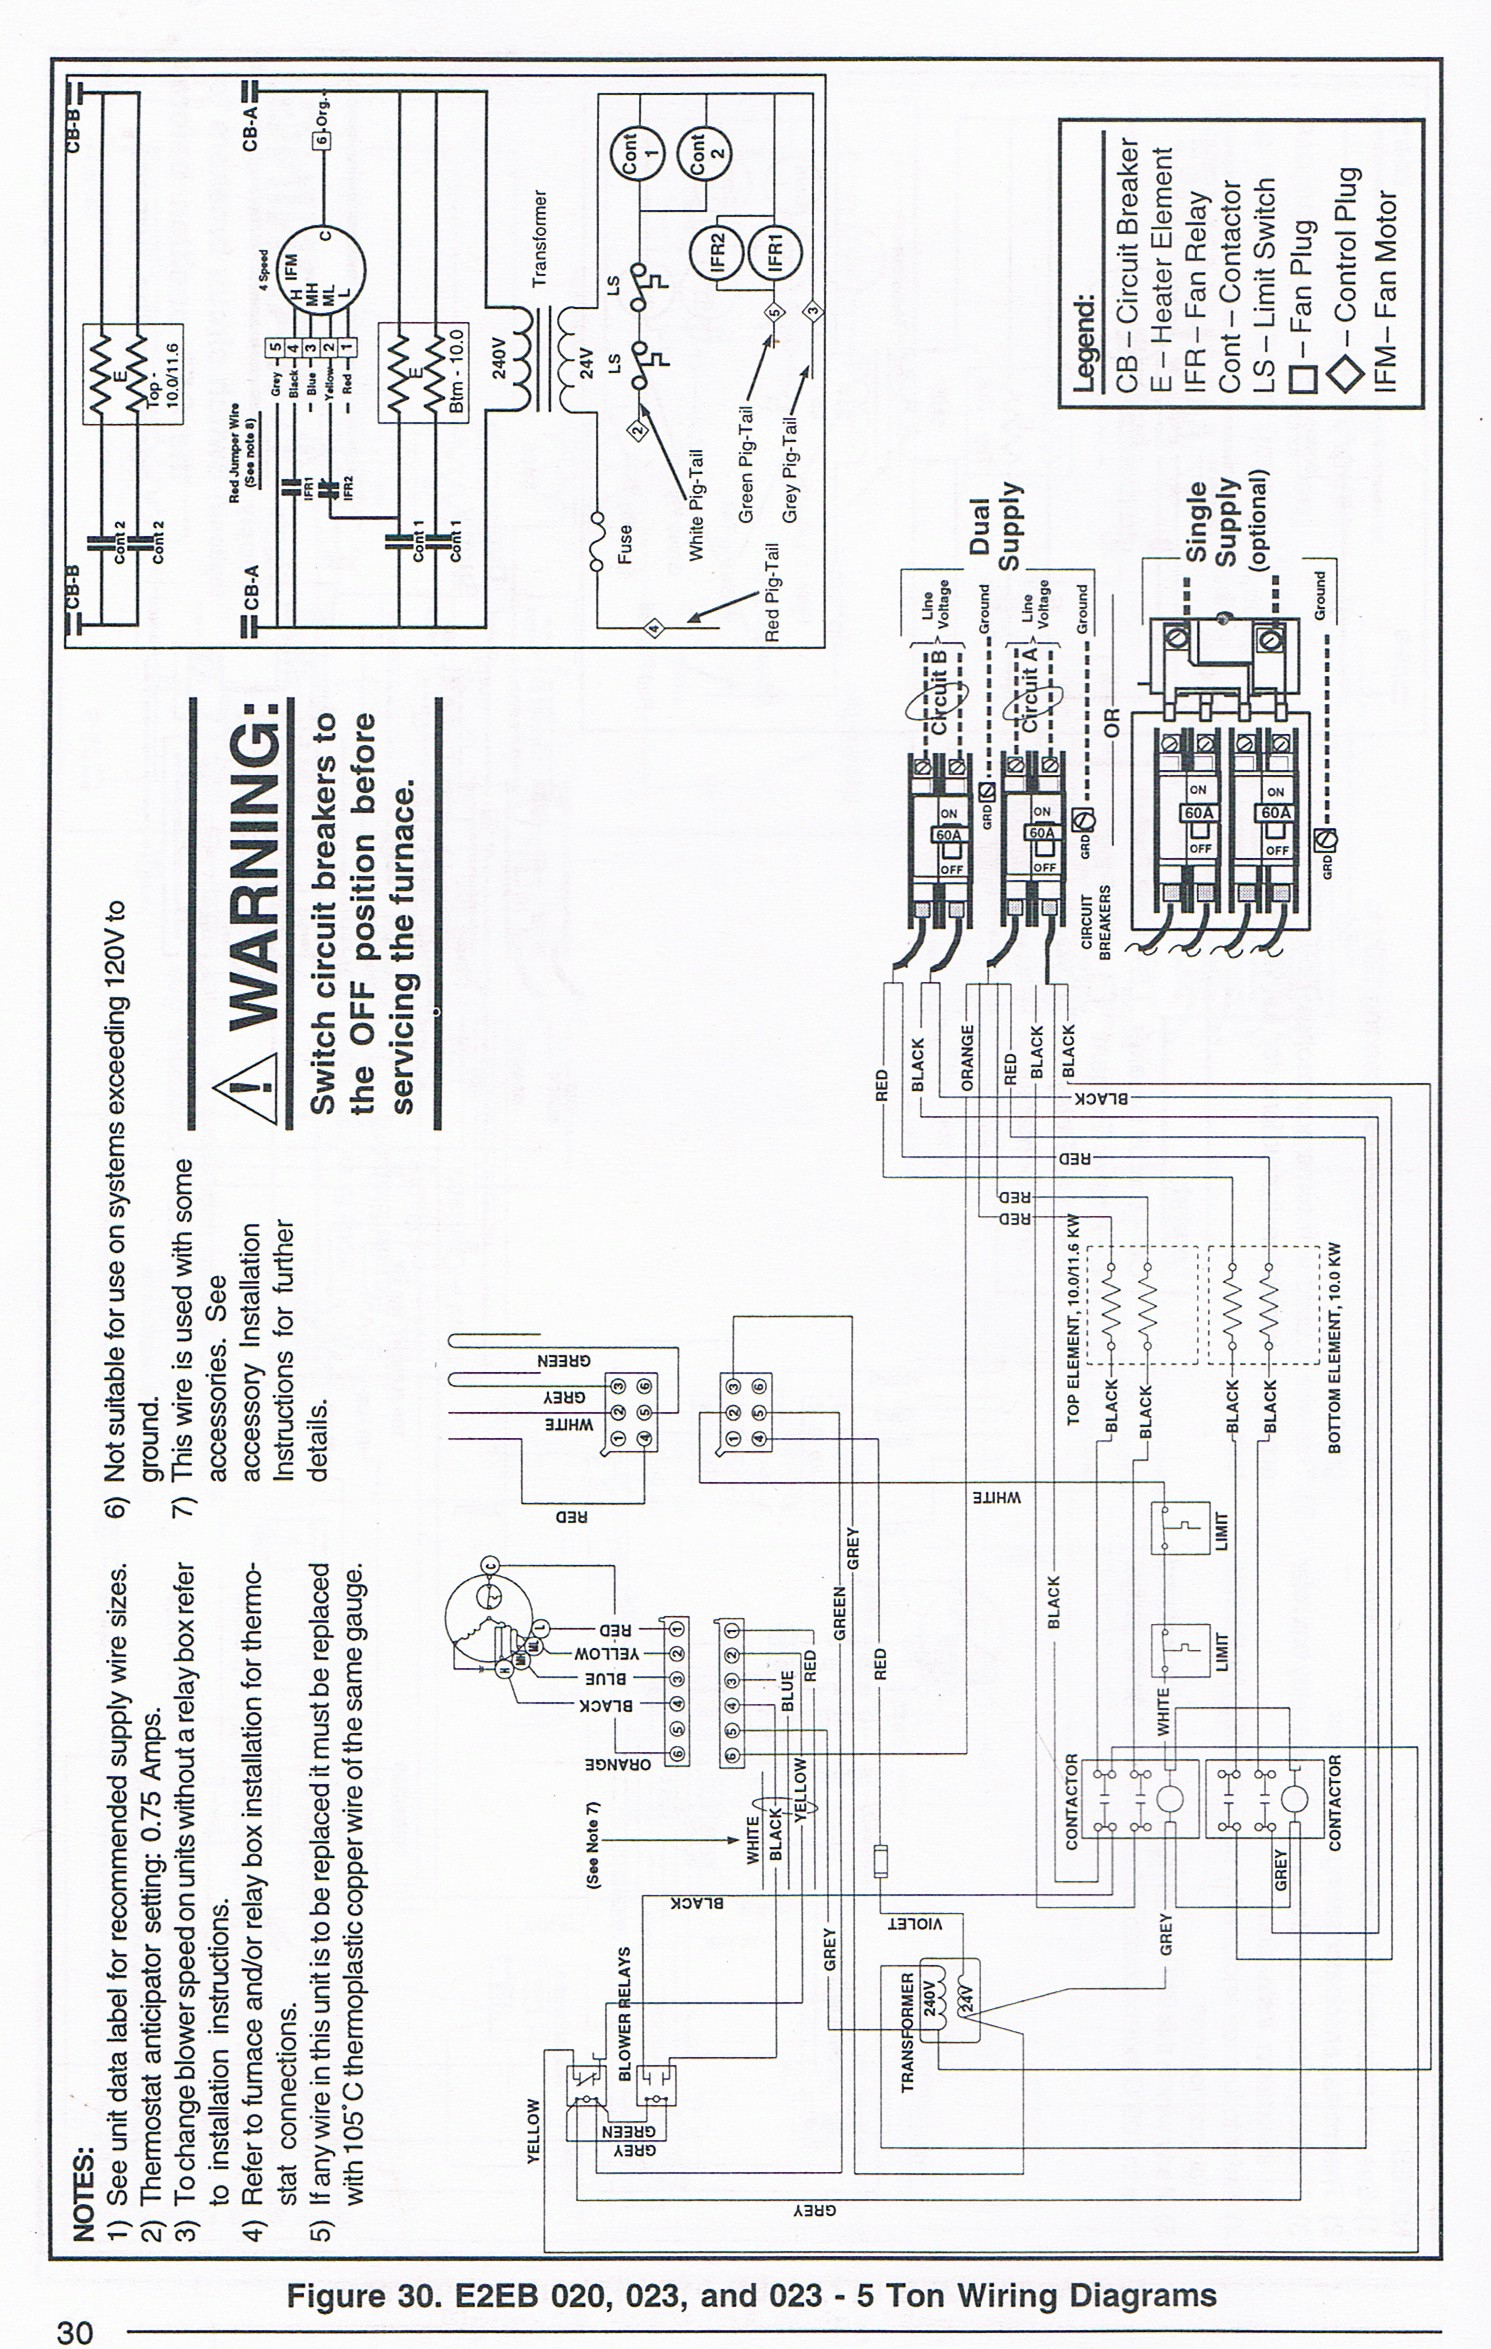 Mobile Home Intertherm Gas Furnace Wiring Diagram - Wiring Diagram - Gas Furnace Thermostat Wiring Diagram